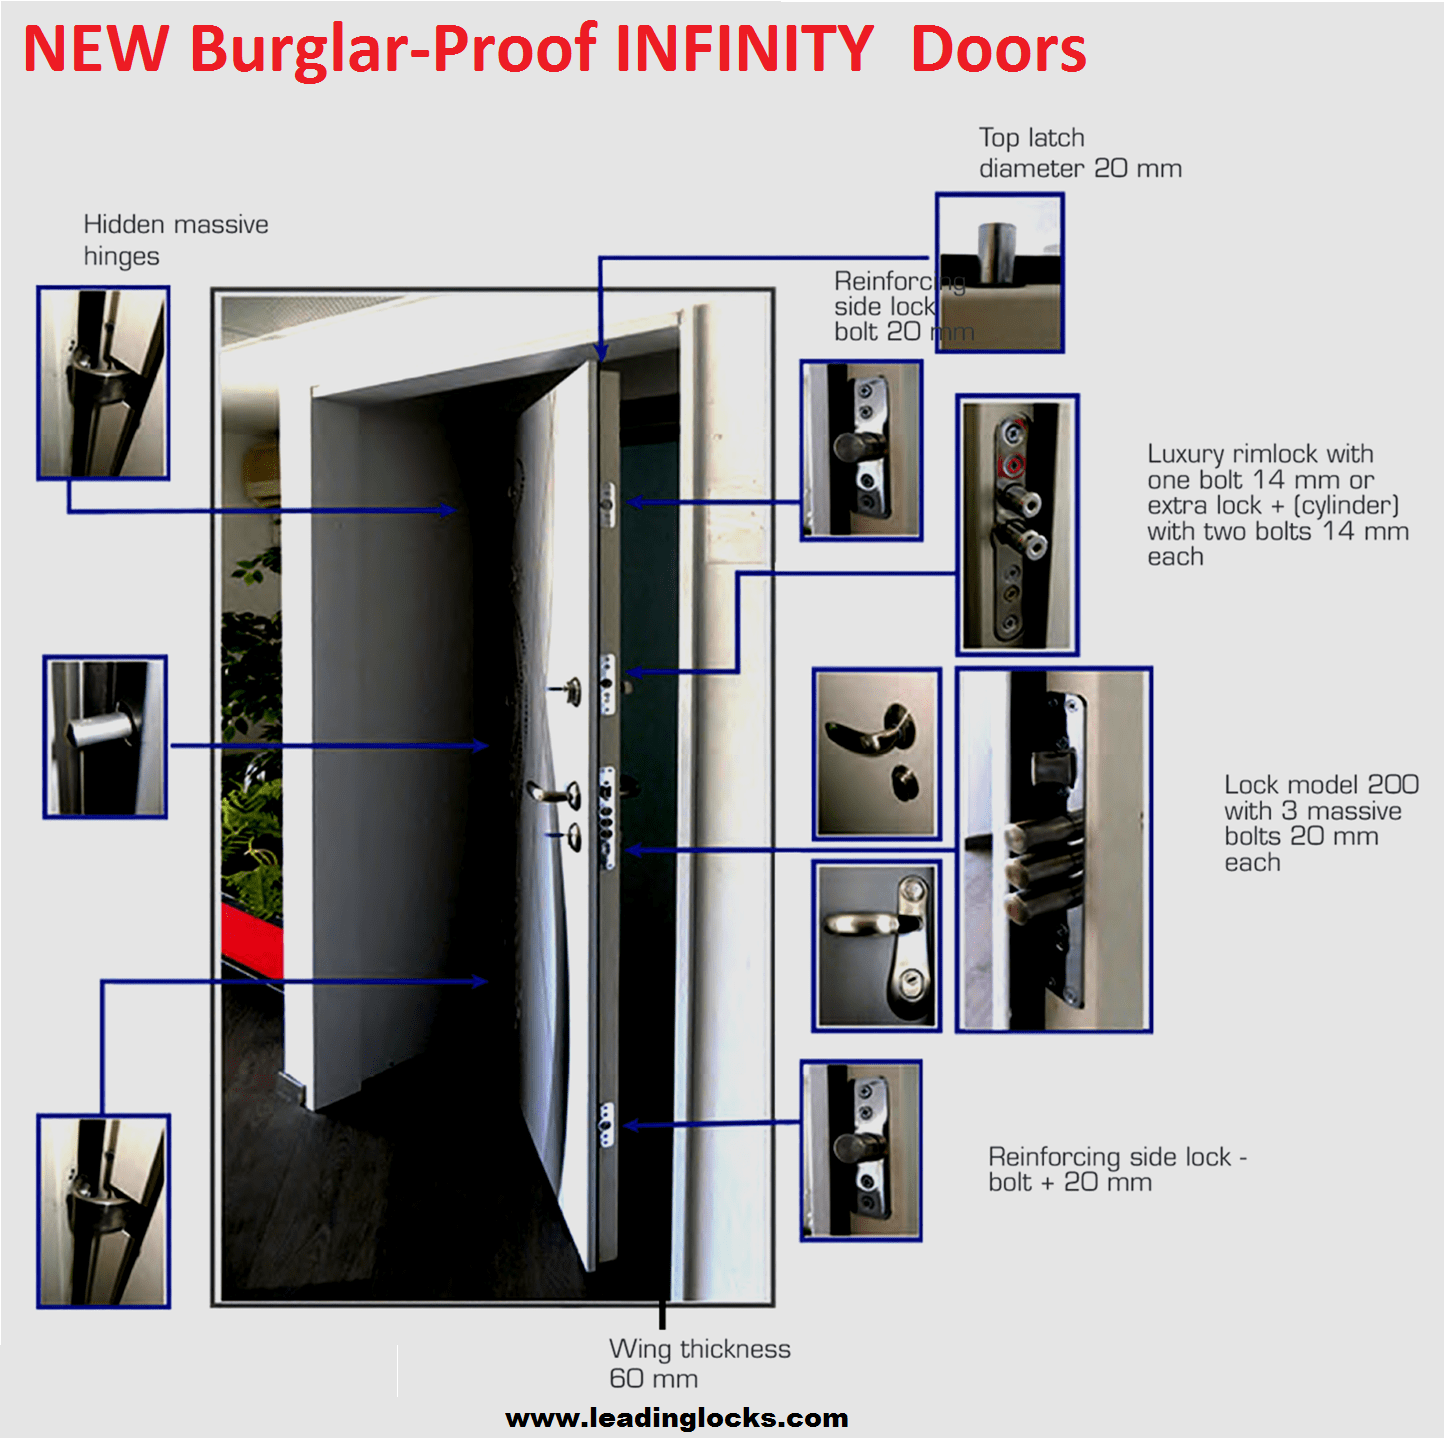 14383803206262721444 MULTI LOCK HIGH SECURITY DOORS #BB1018 Burglar Proof Door 14441438 image with 1444x1438 px & Burglar Proof Door | btca.info Examples Doors Designs Ideas ... Pezcame.Com